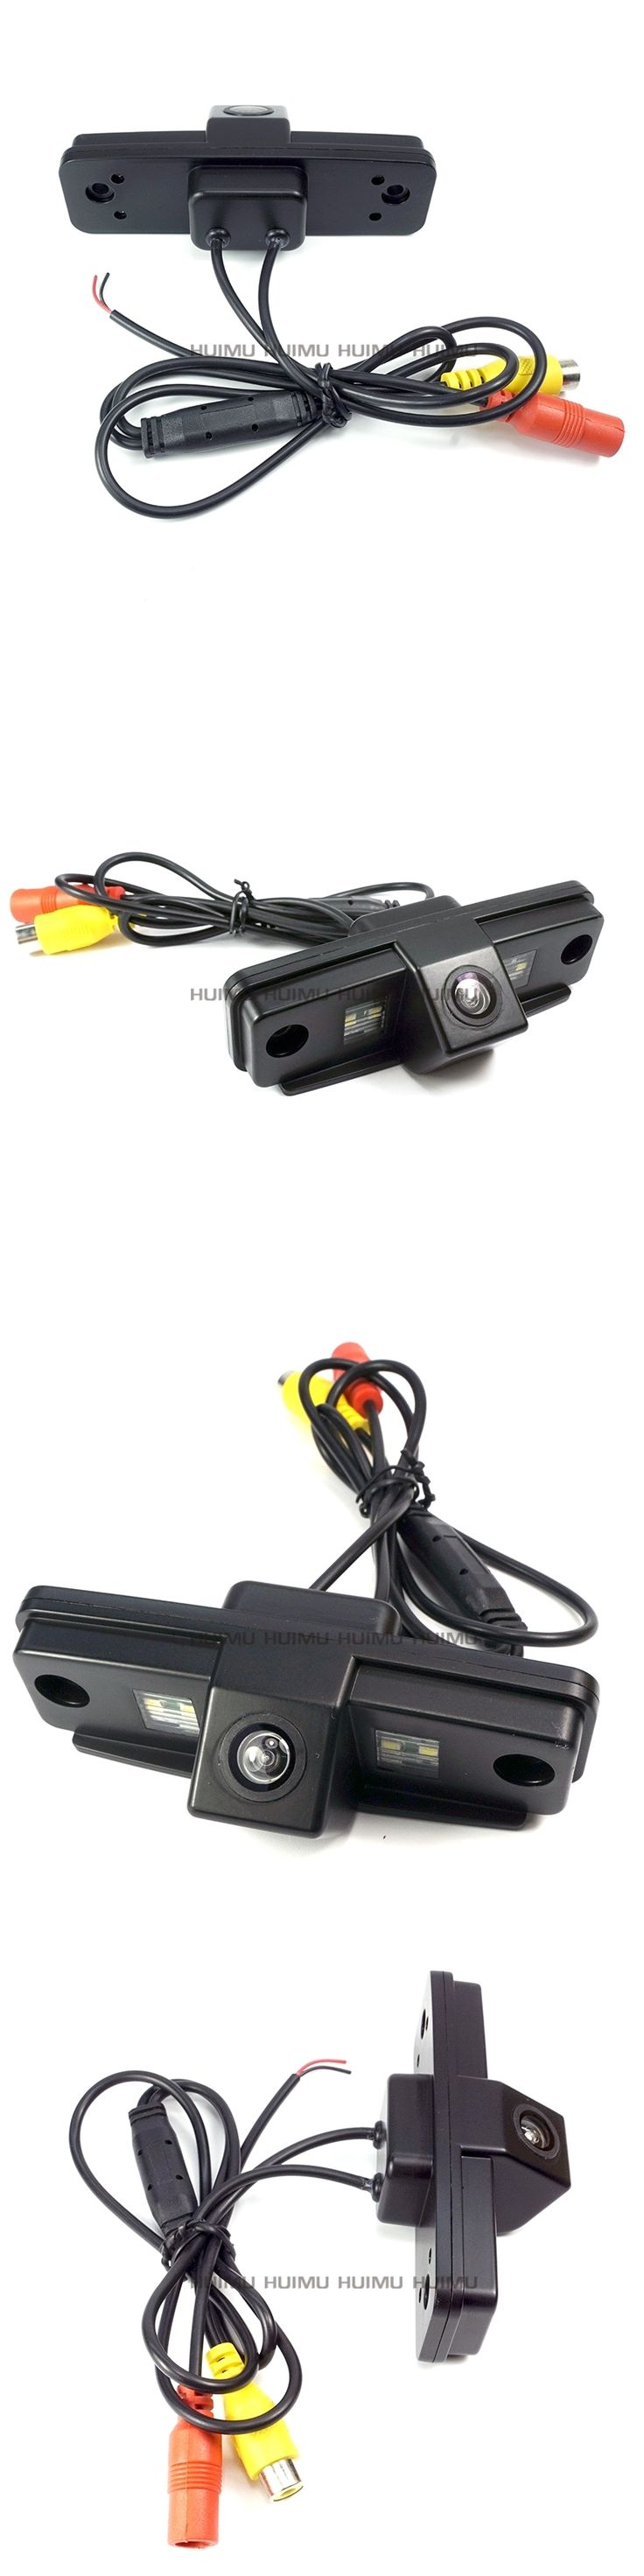 CCD HD night vision car camera car rear camera car monitor pa backup viewer for SUBARU FORESTER&IMPREZA(3C)/OUTBACK reverse CAM